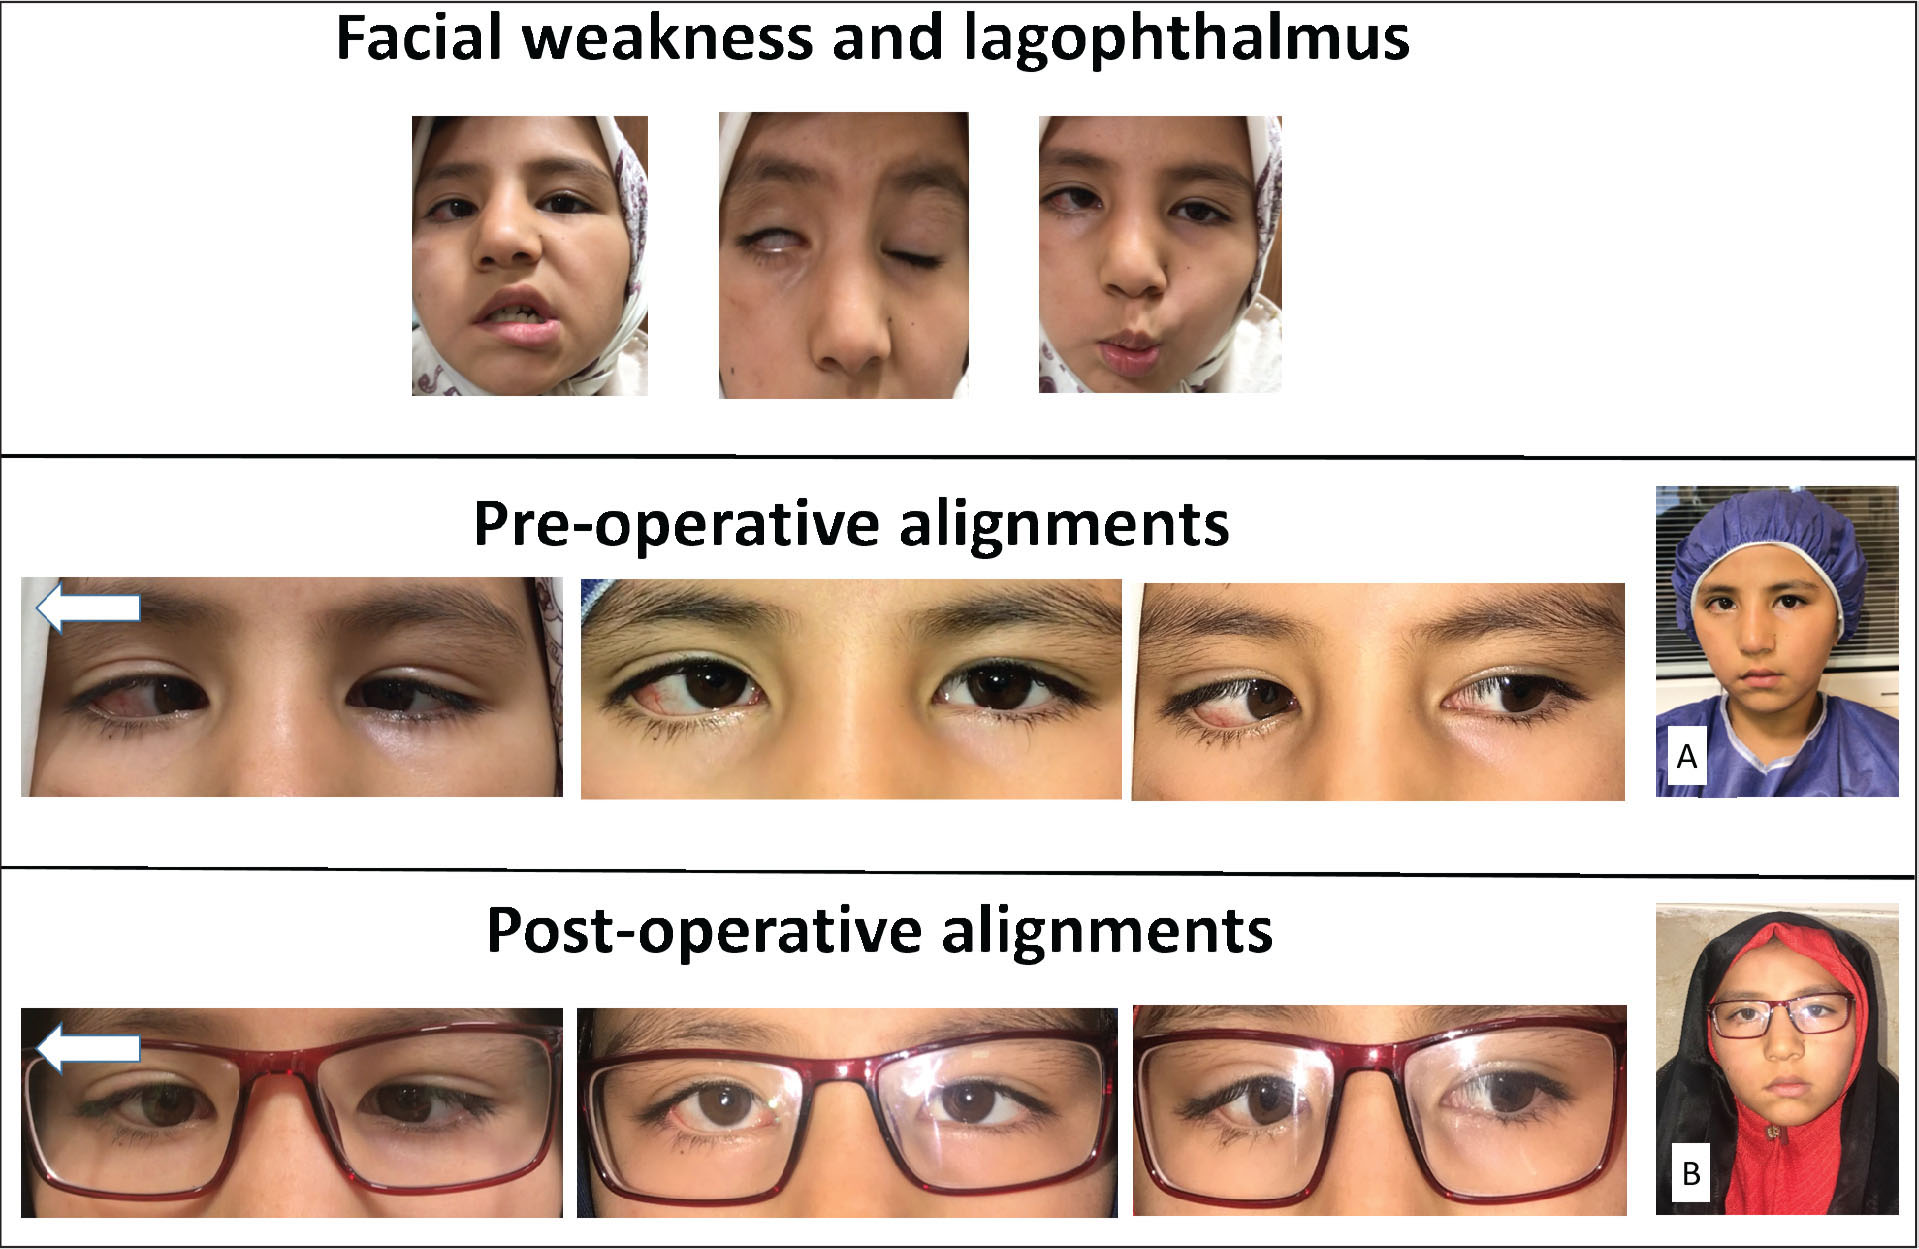 (Top row) Facial weakness and lagophthalmos. (Middle row) Preoperative gaze position and convergence movement on attempted right gaze, showing (A) preoperative right face turn. (Bottom row) Postoperative gaze position and reduced convergence movement on attempted right gaze, showing (B) improved face turn to the right side postoperatively.